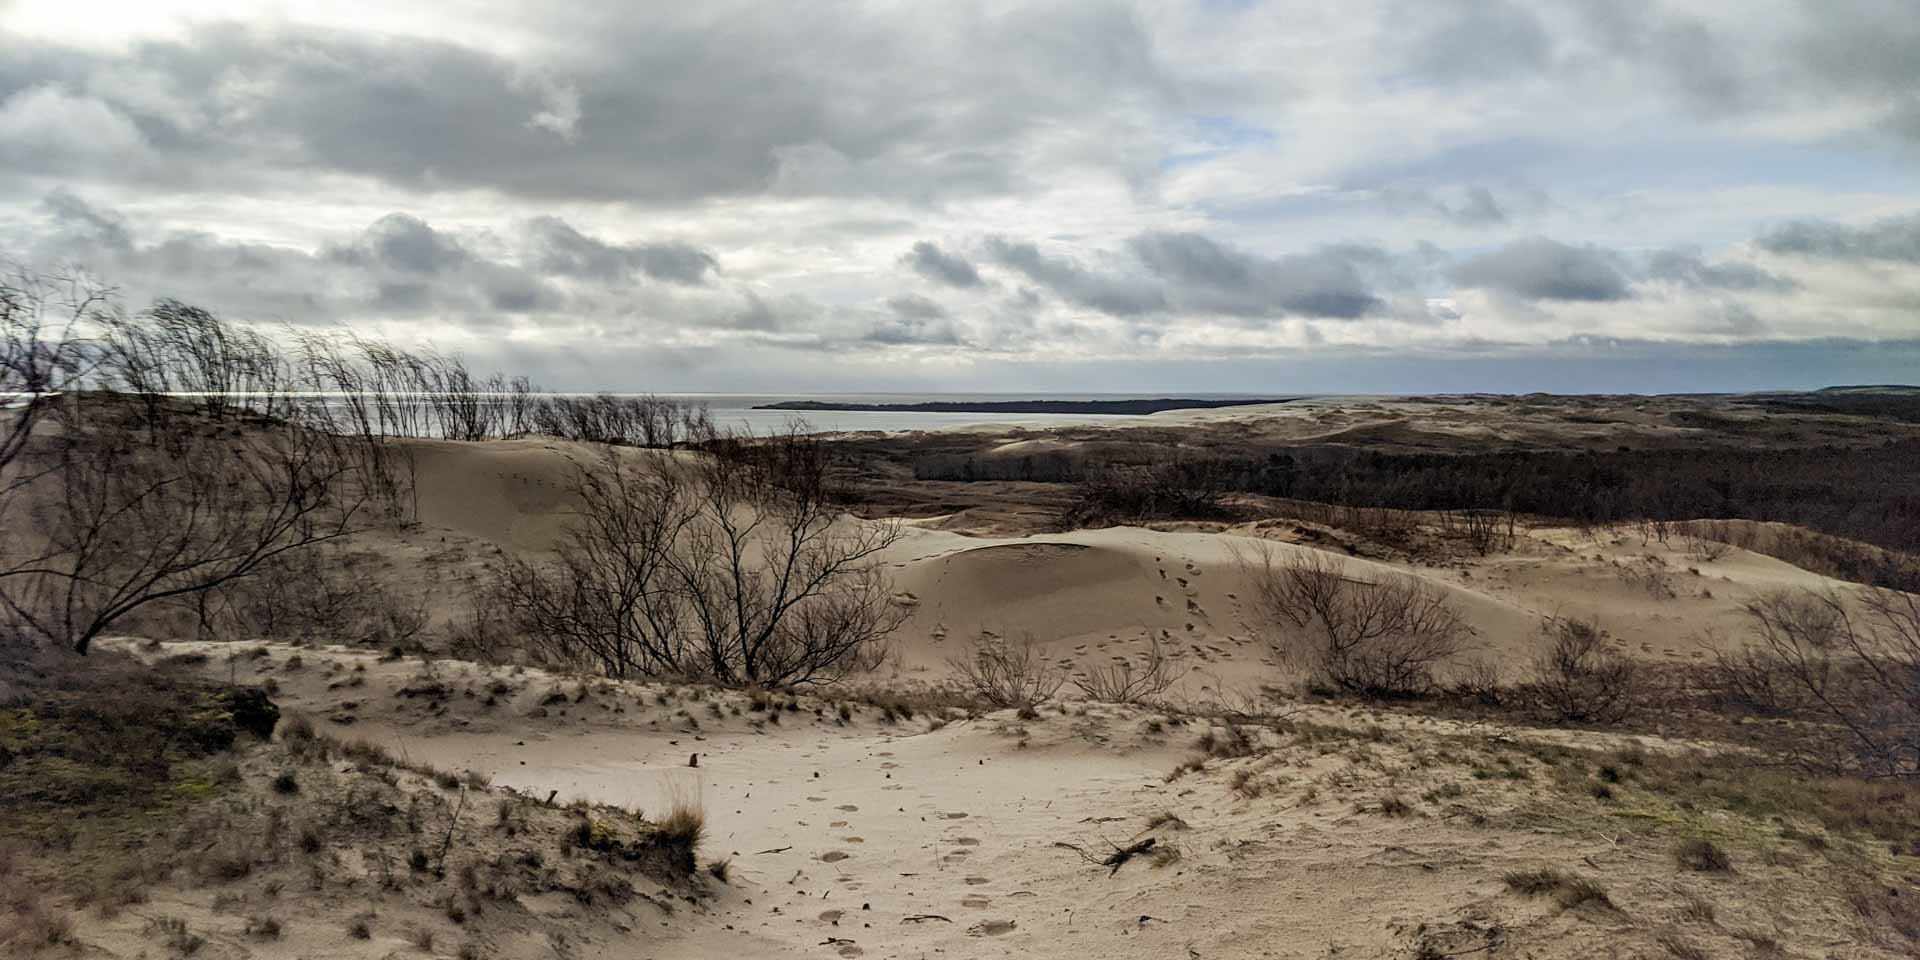 Parnidis Dune on the Curonian Spit